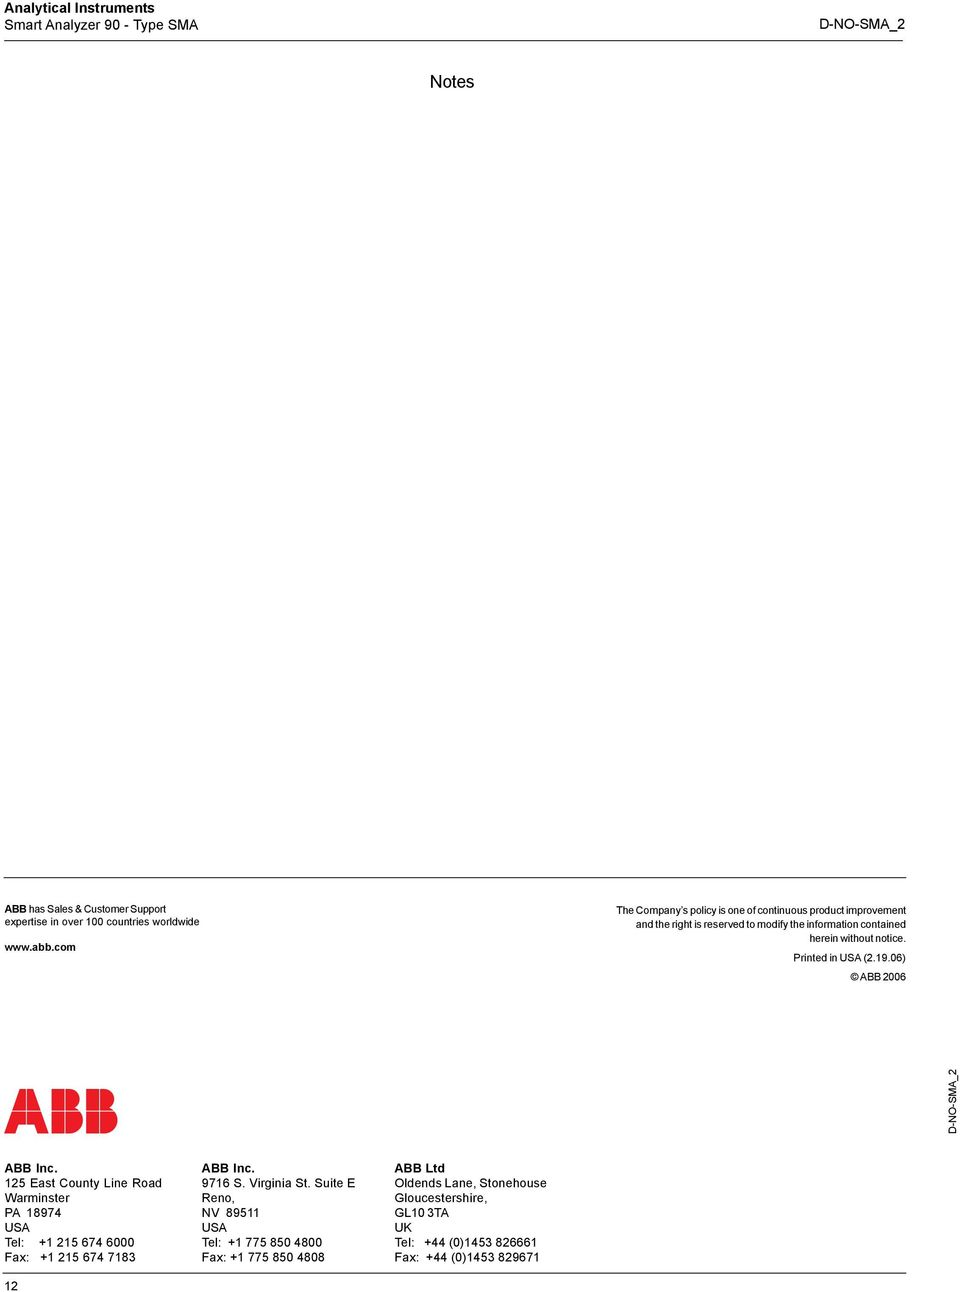 notice. Printed in USA (.19.06) ABB 006 ABB Inc.